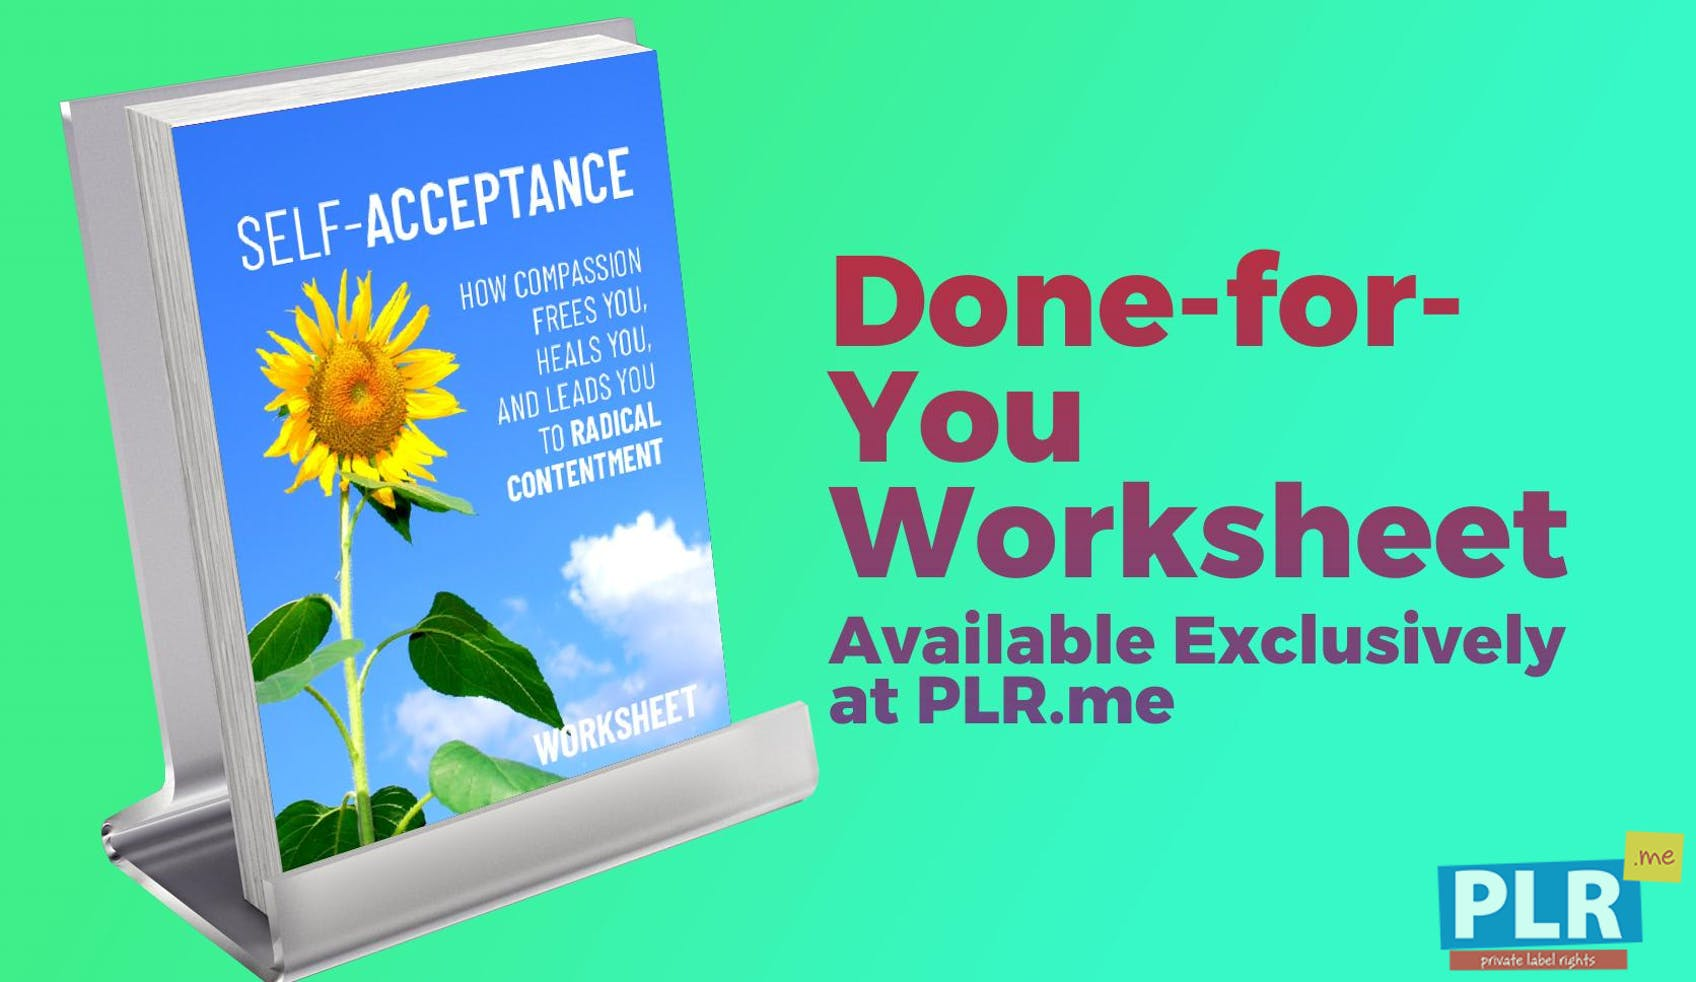 Self Acceptance How Compassion Frees You, Heals You, And Leads You To Radical Contentment Worksheet